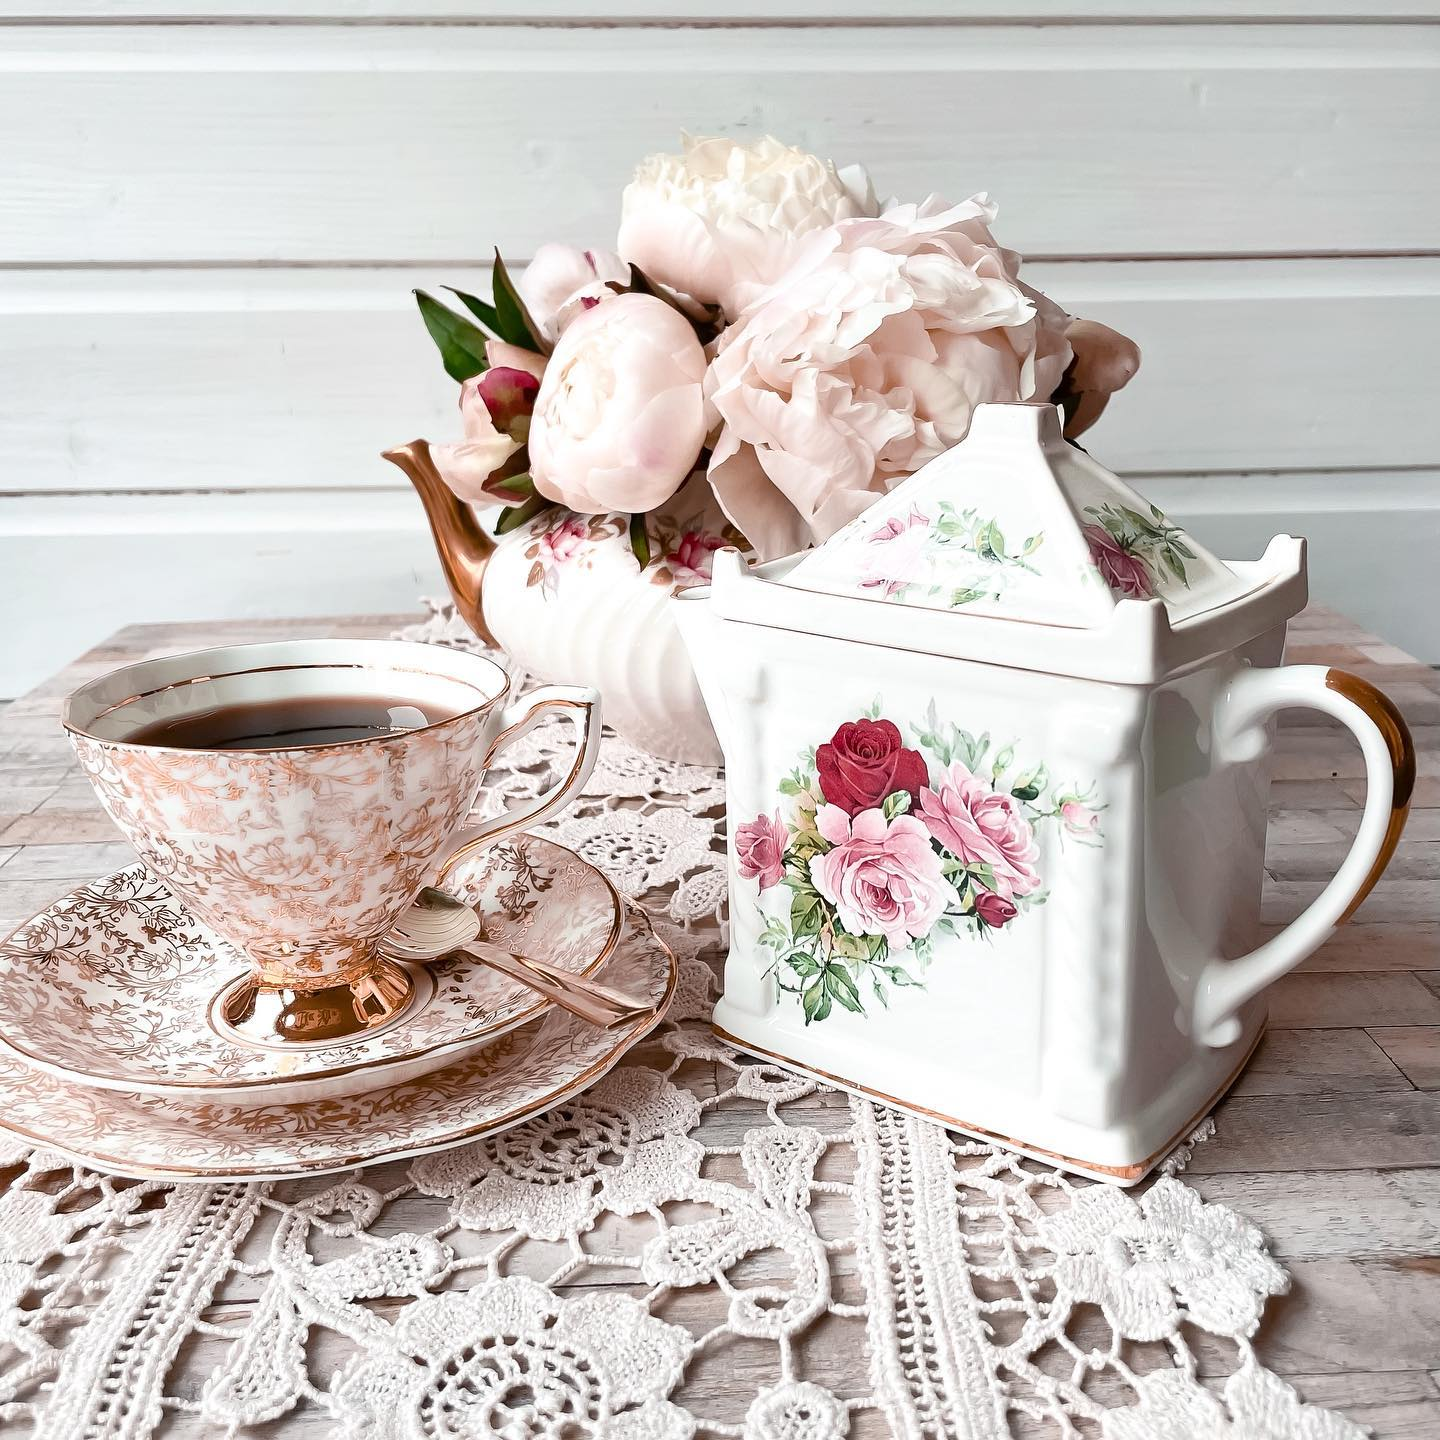 Peonies, porcelain china and pretty lace